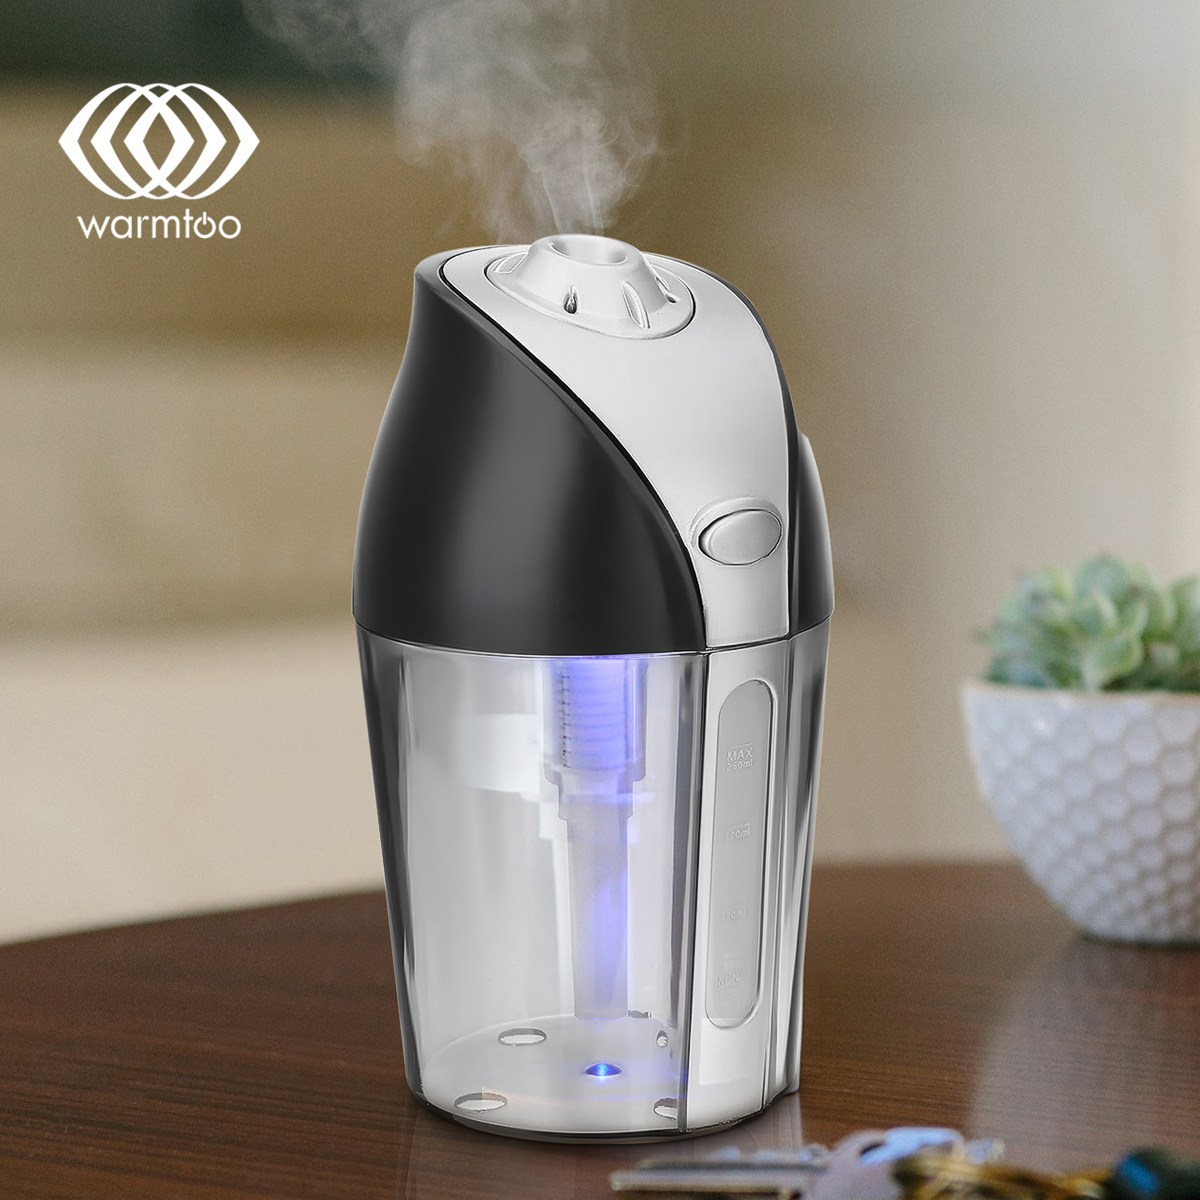 Warmtoo 250ML Multifunctional Ultrasonic Mini USB Air Humidifier Purifier Aroma Diffuser Atomizer For Car Home Office 5v led lighting usb mini air humidifier 250ml bottle included air diffuser purifier atomizer for desktop car